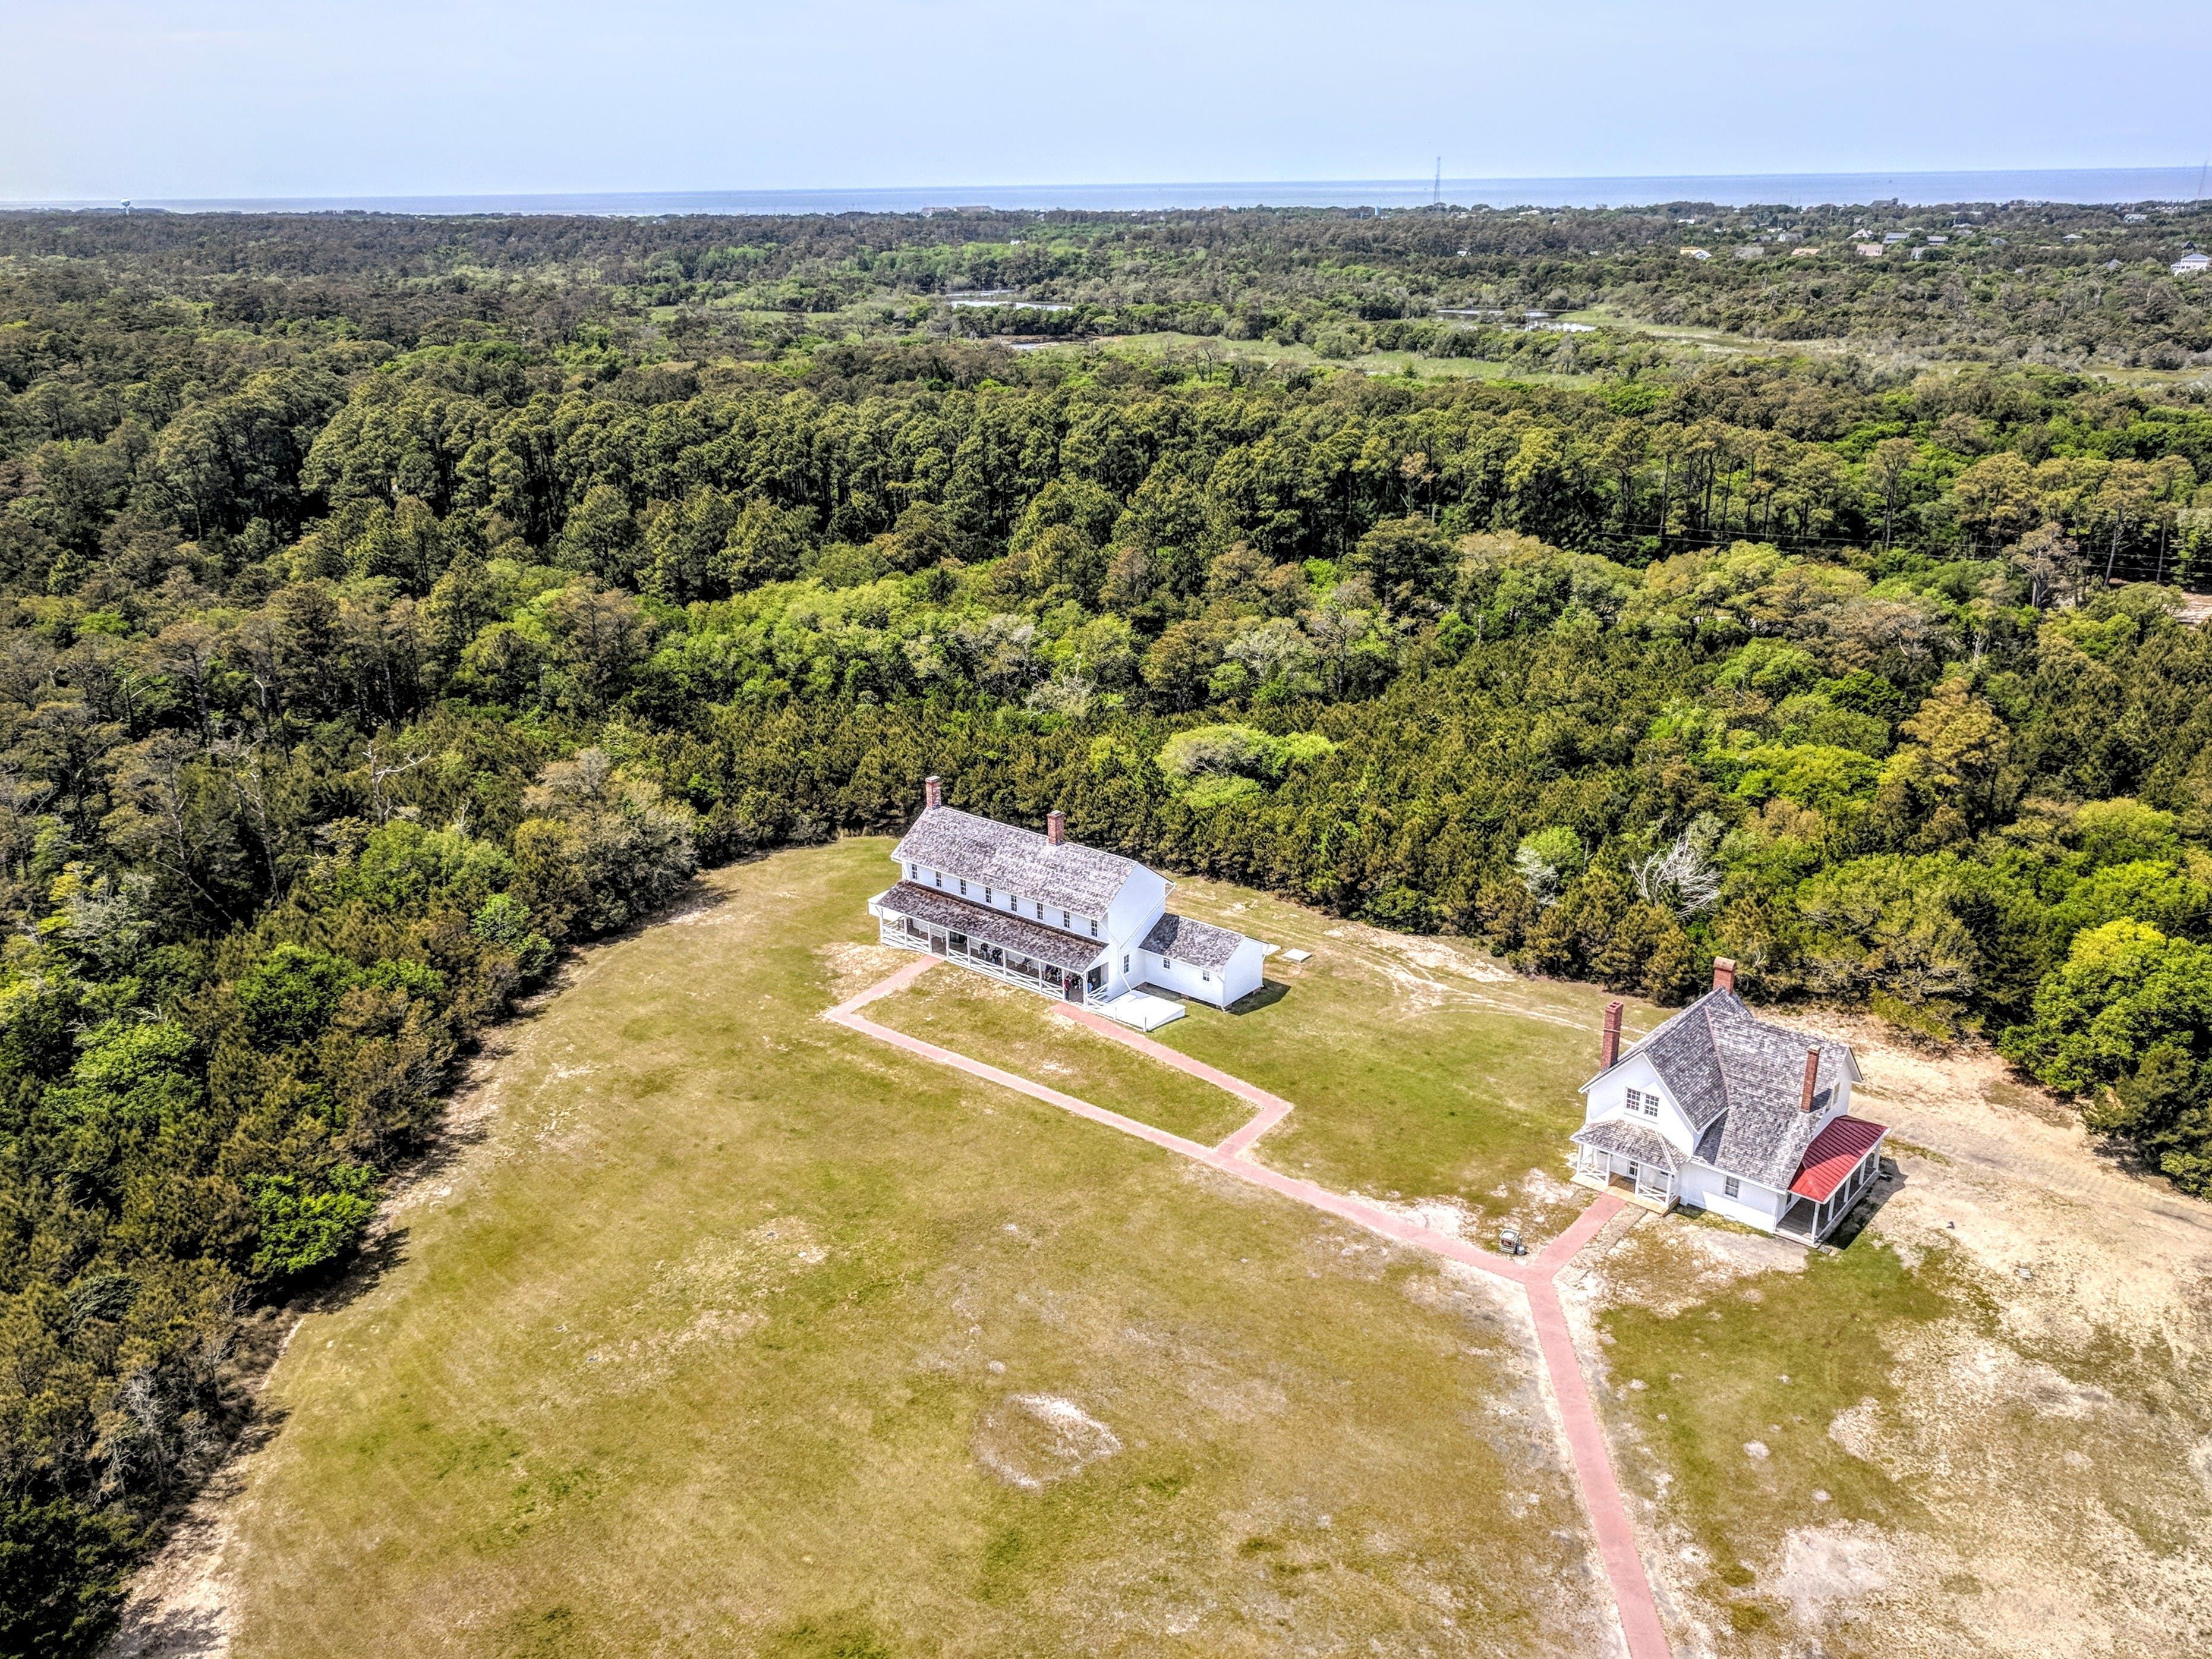 Aerial Photography of Two Houses Surrounded With Plants and Trees